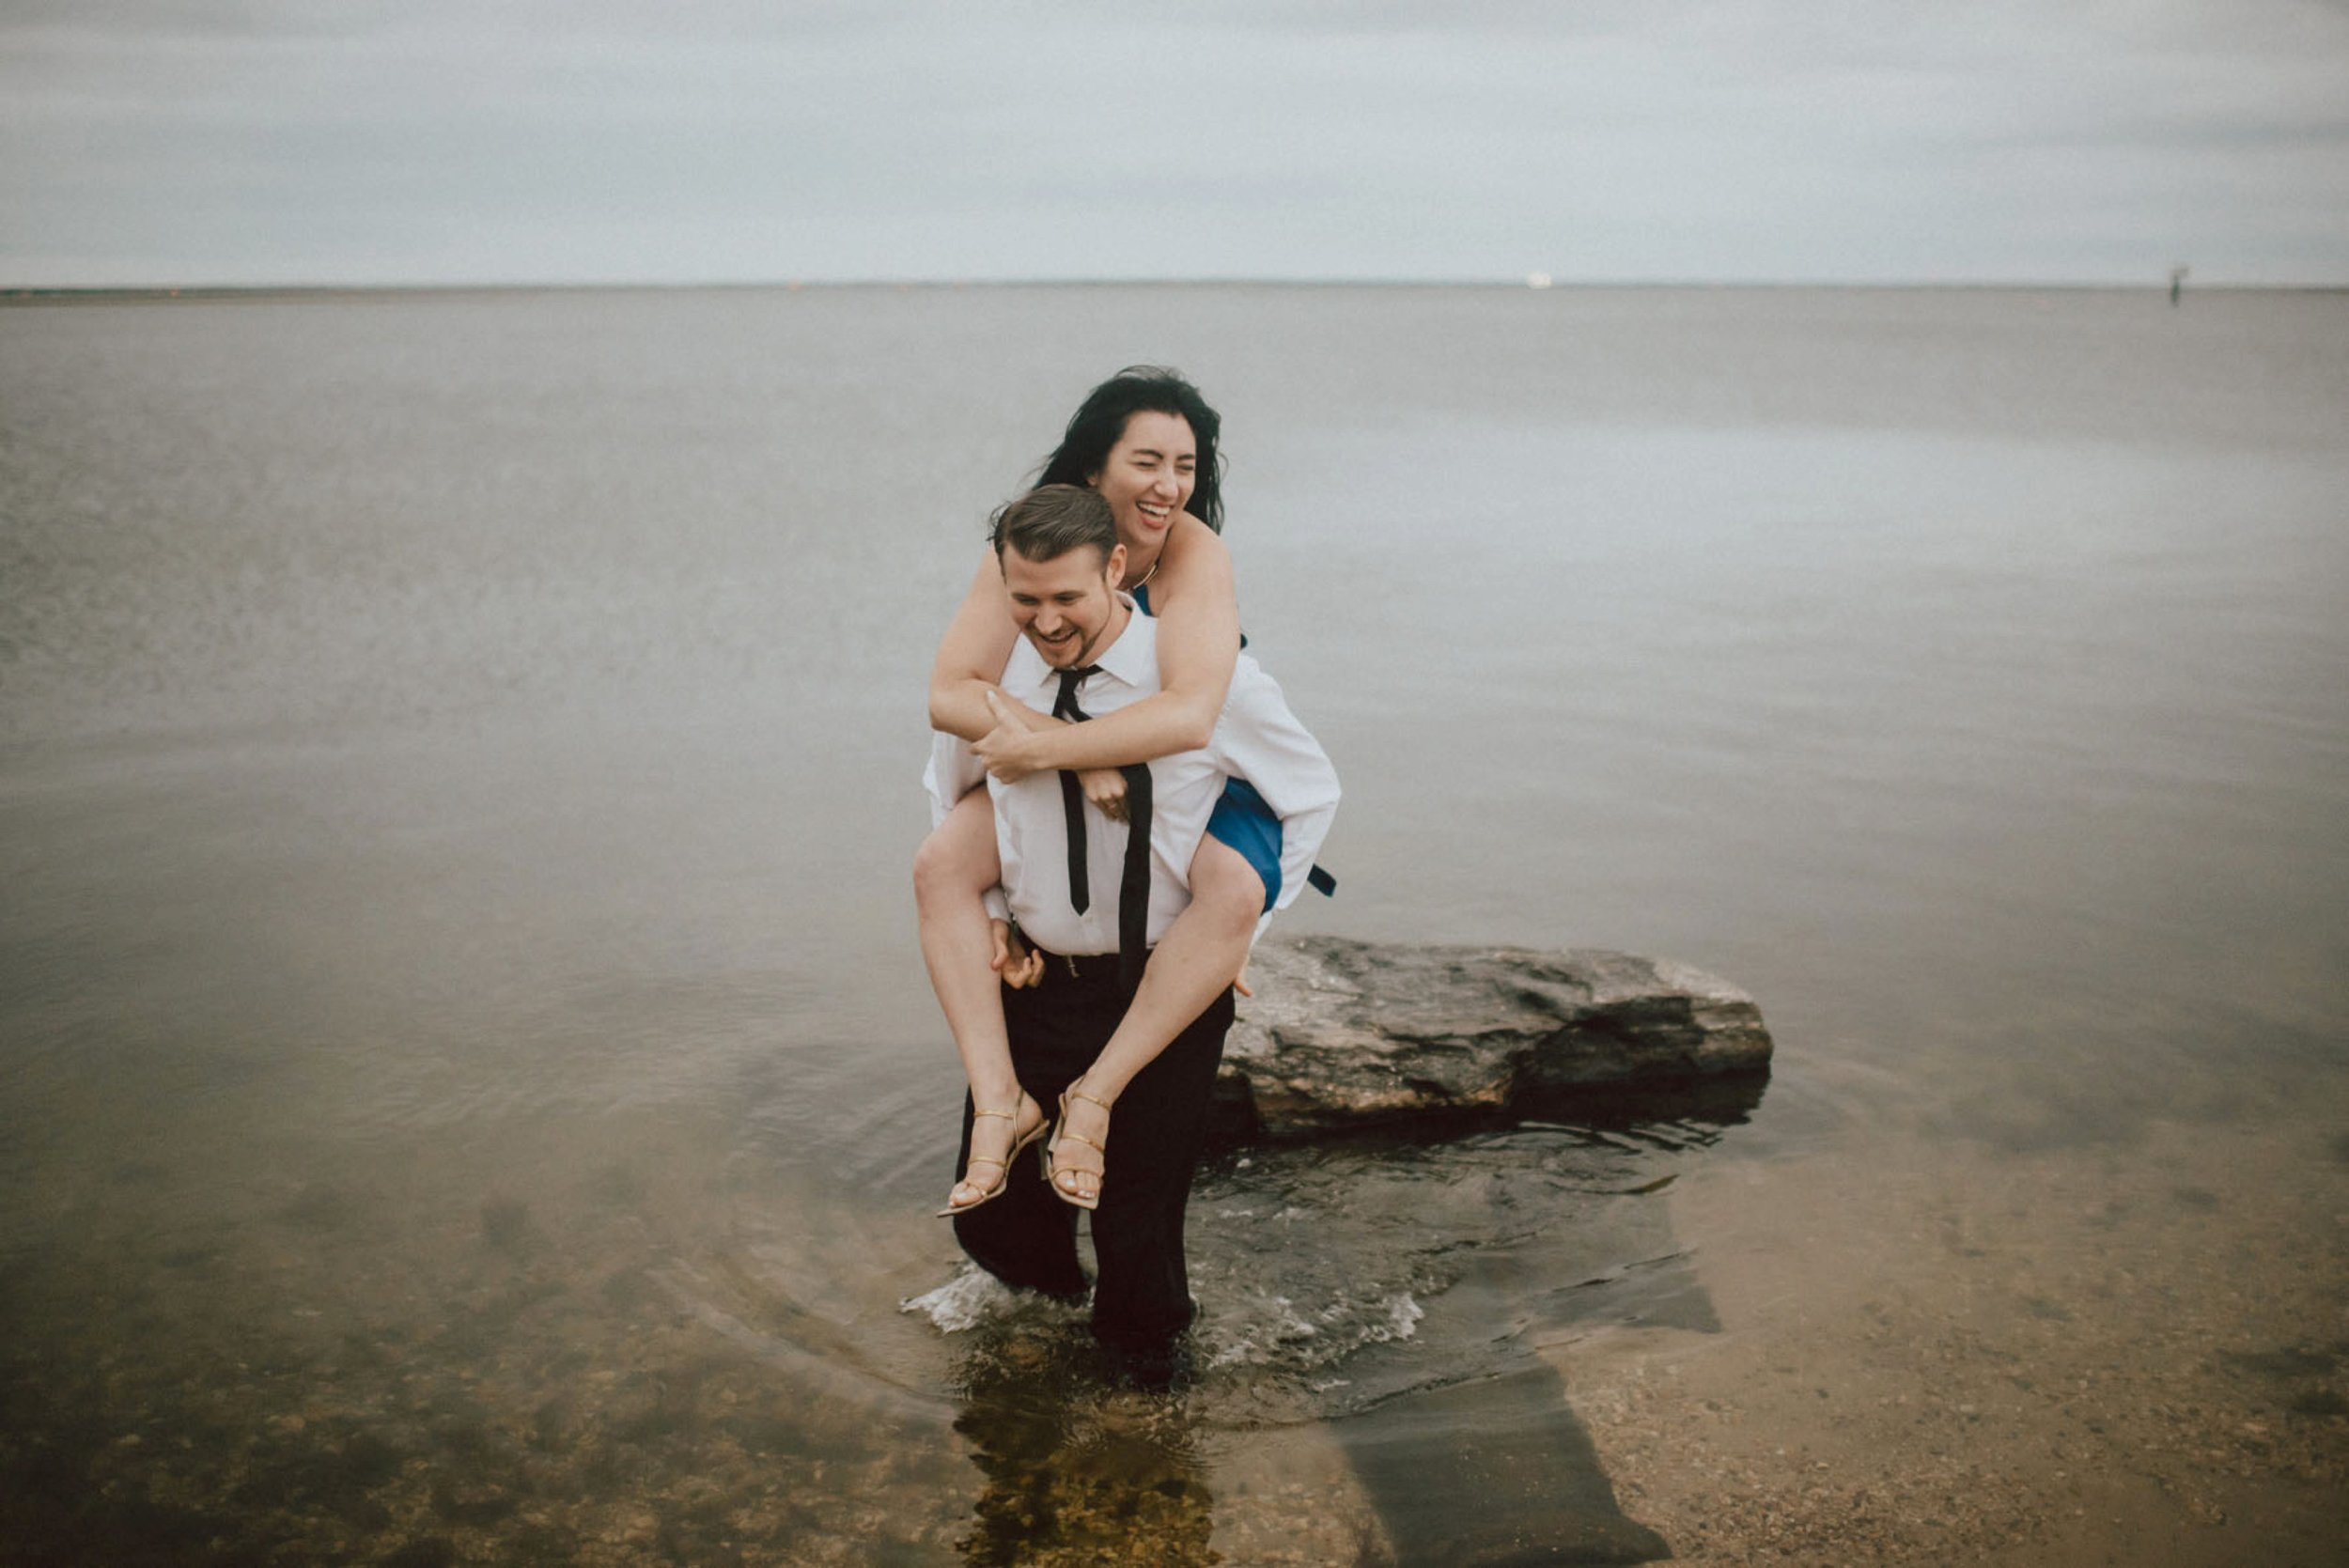 Long-beach-island-engagement-session-64.jpg